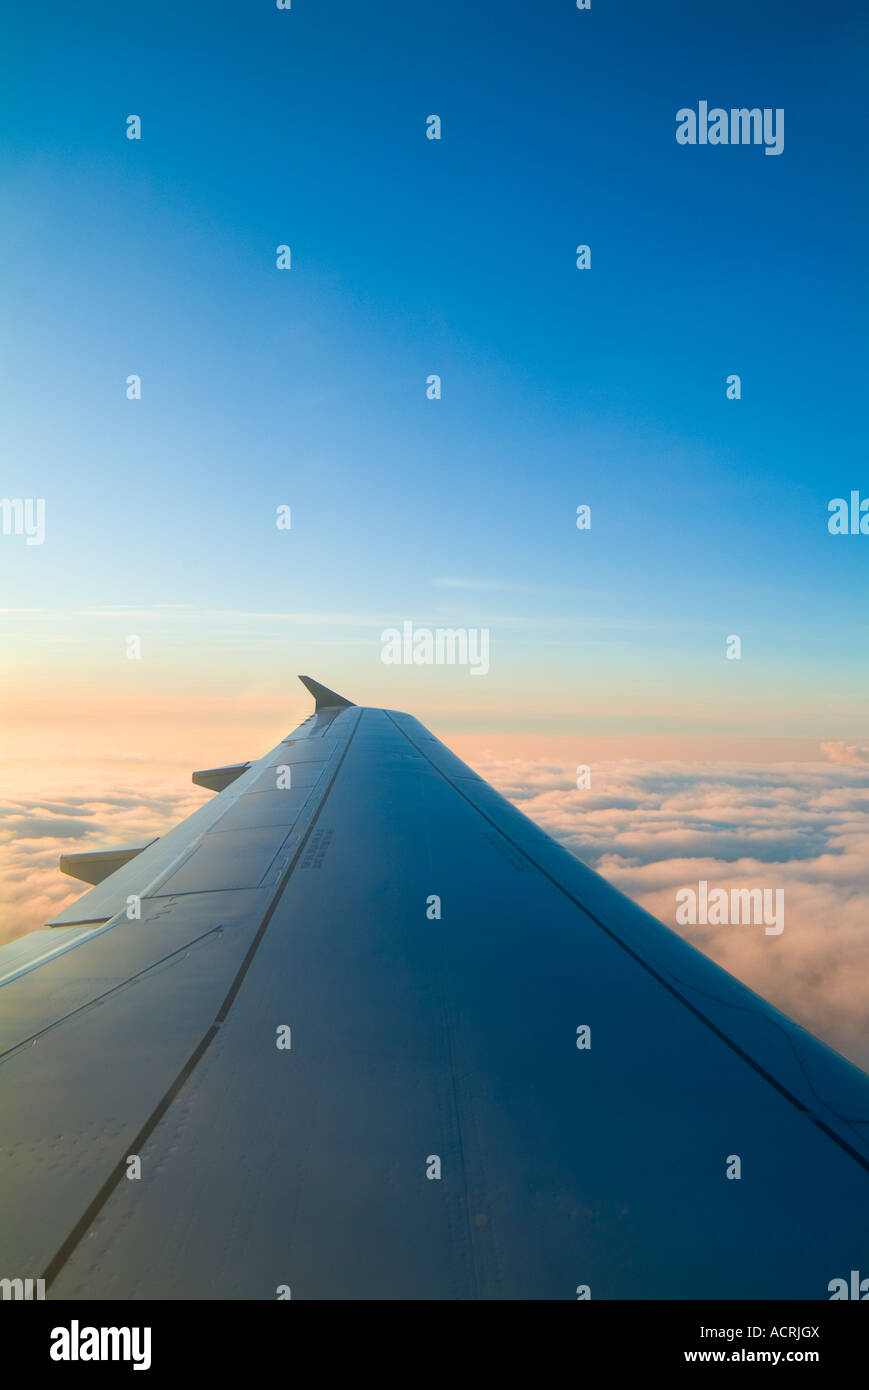 Airplane Wing At Sunset With Clouds - Stock Image